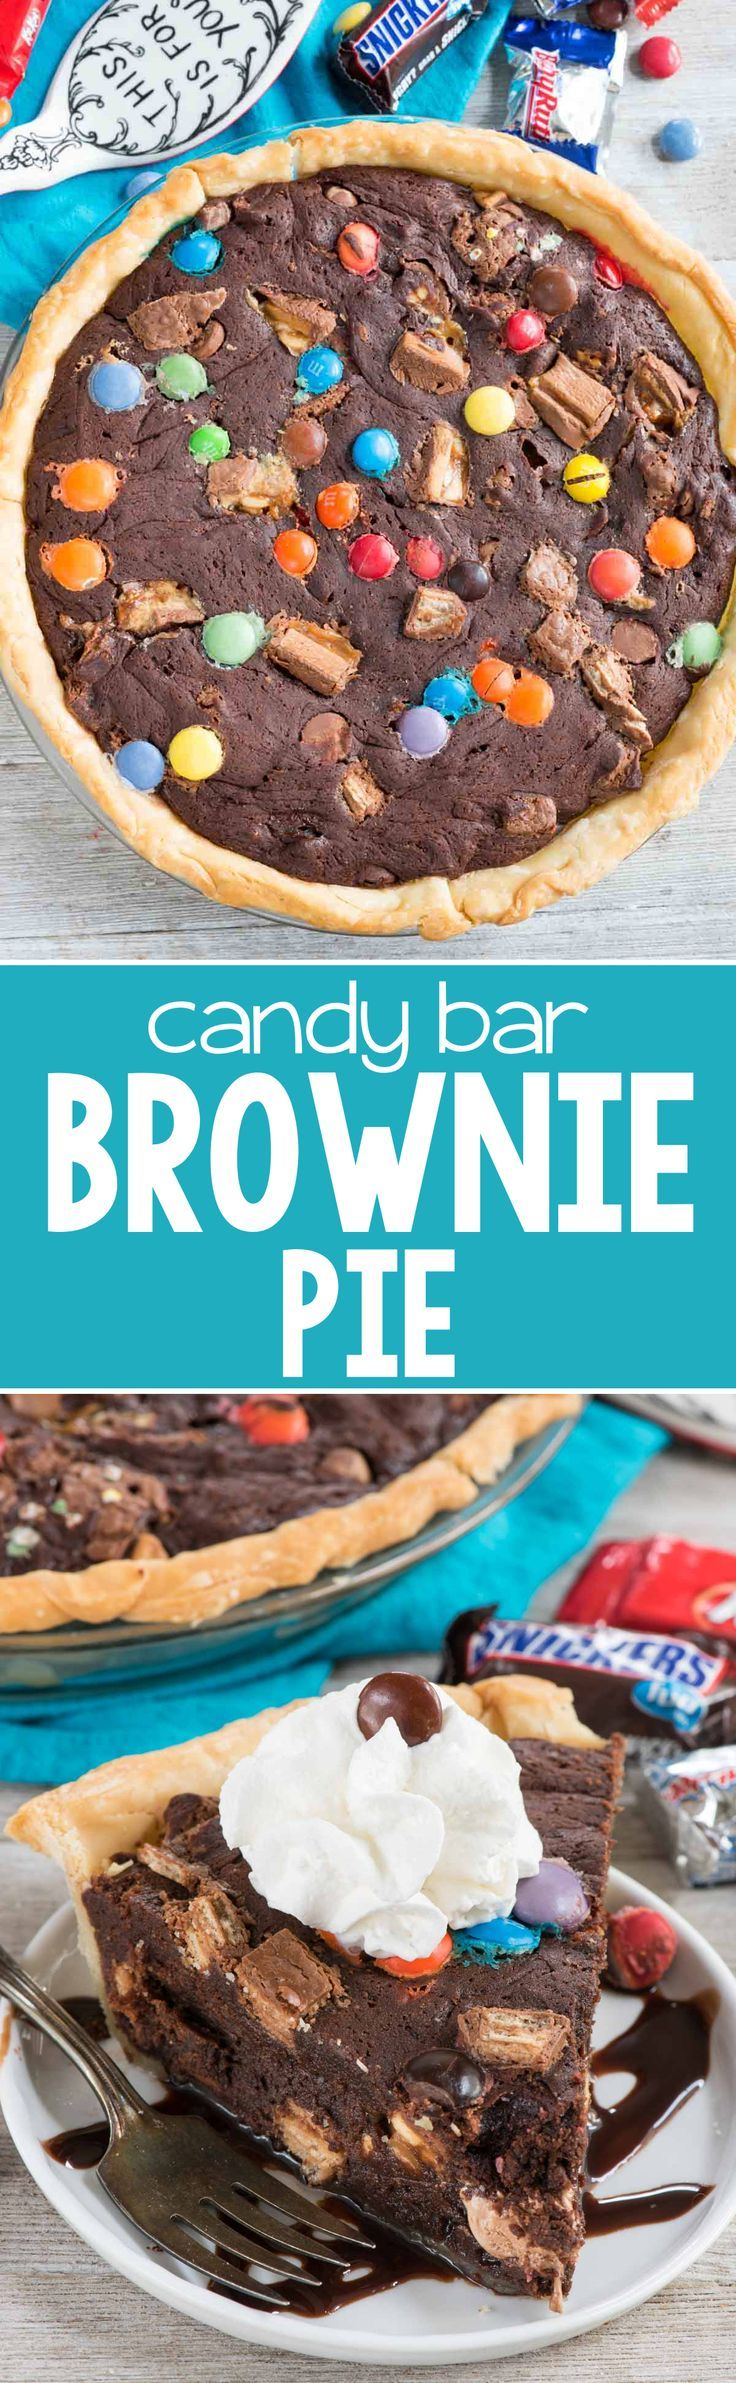 Slow Cooker: Candy Bar Brownie Pie - Crazy for Crust